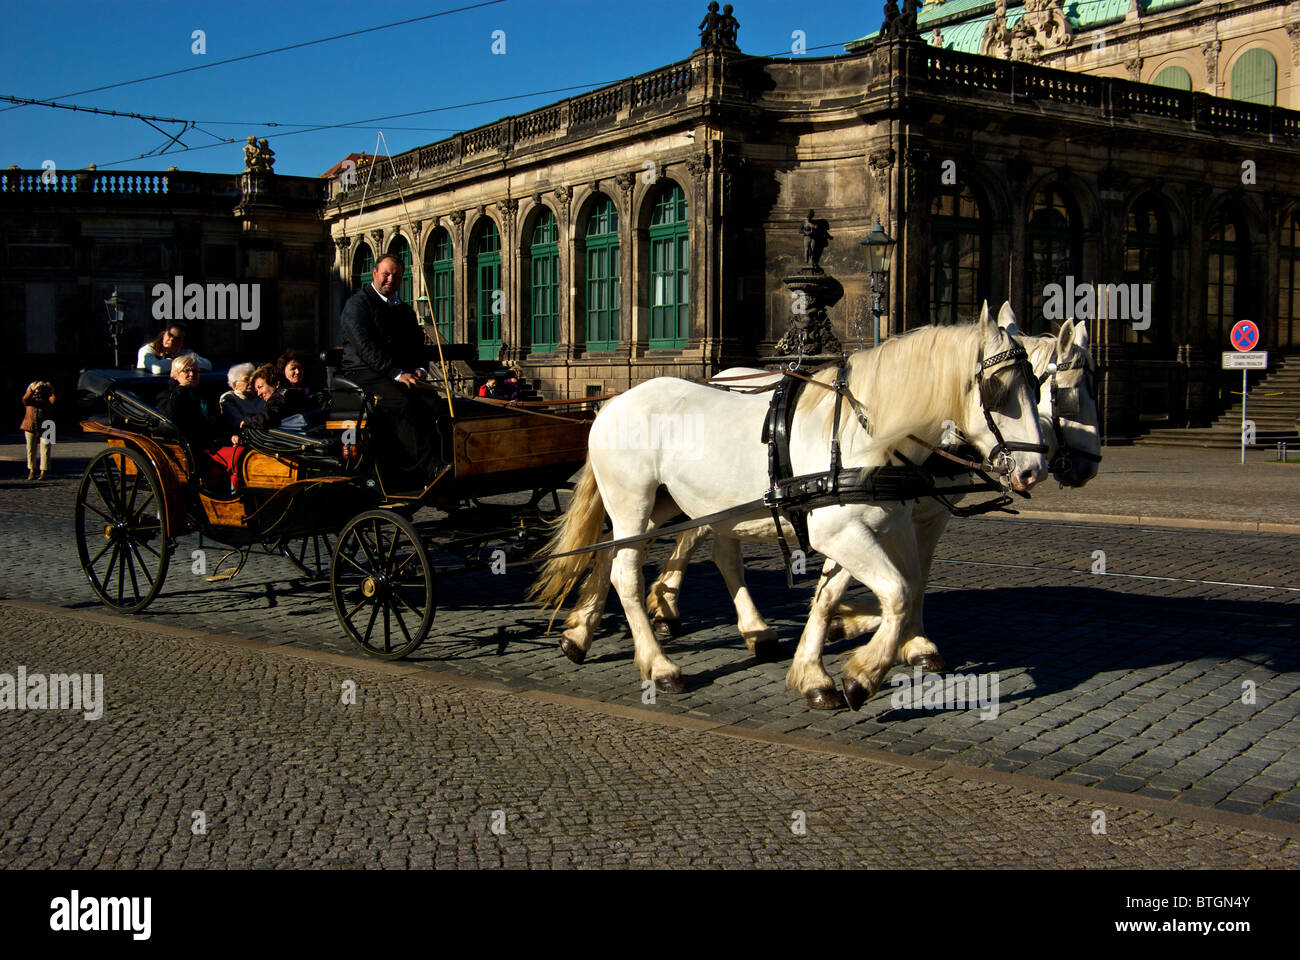 Tourists taking tour of old historic Dresden Altstadt aboard gleaming wooden horse drawn carriage - Stock Image